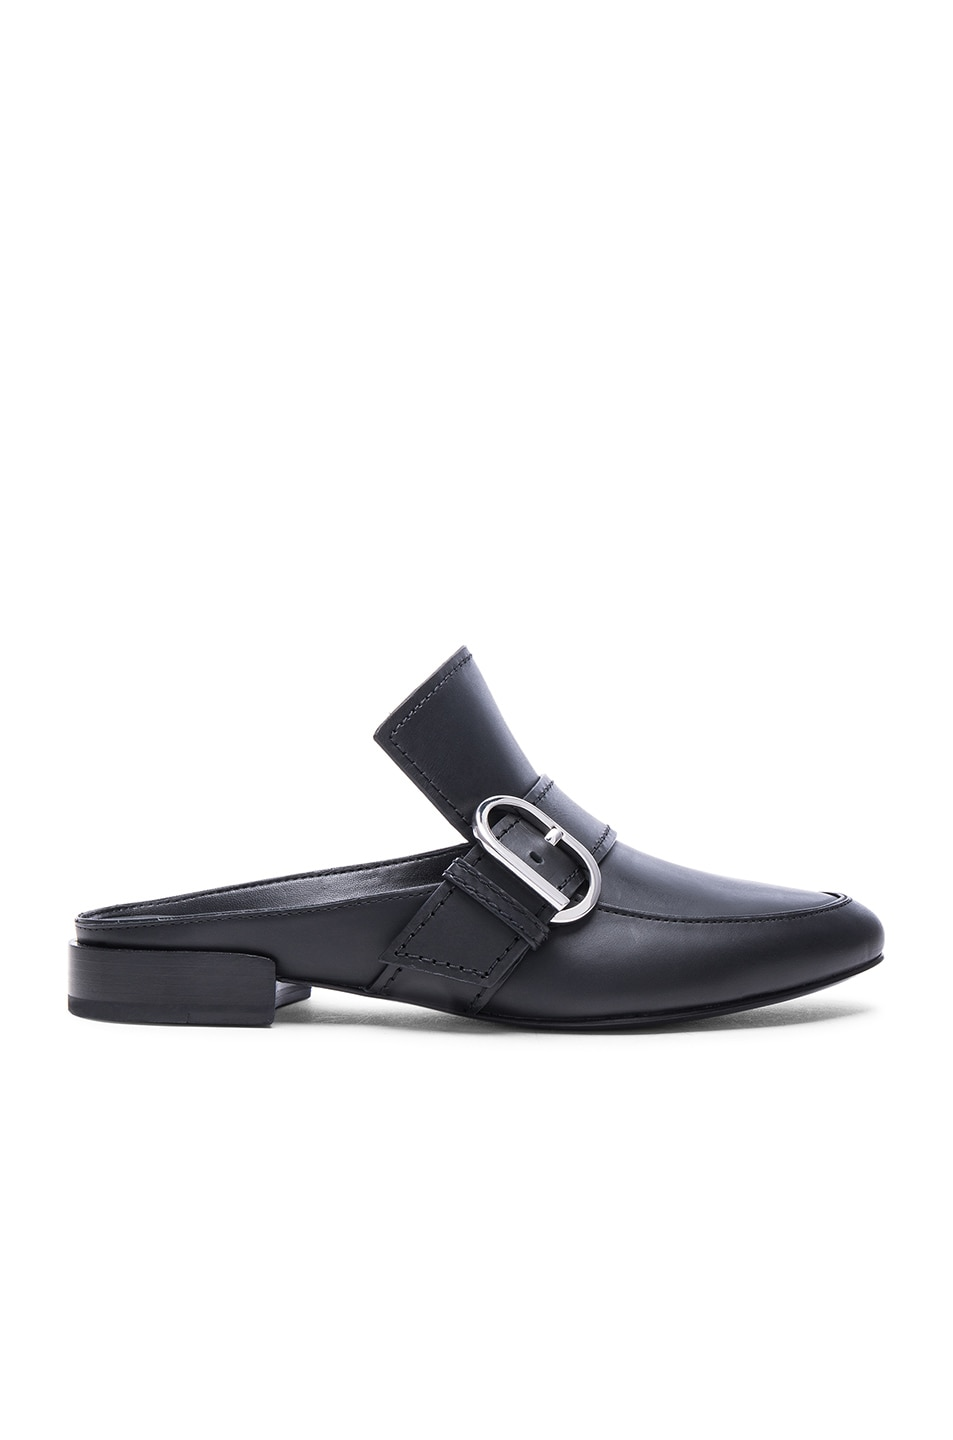 Image 1 of 3.1 phillip lim Louie Leather Mule Flats in Black